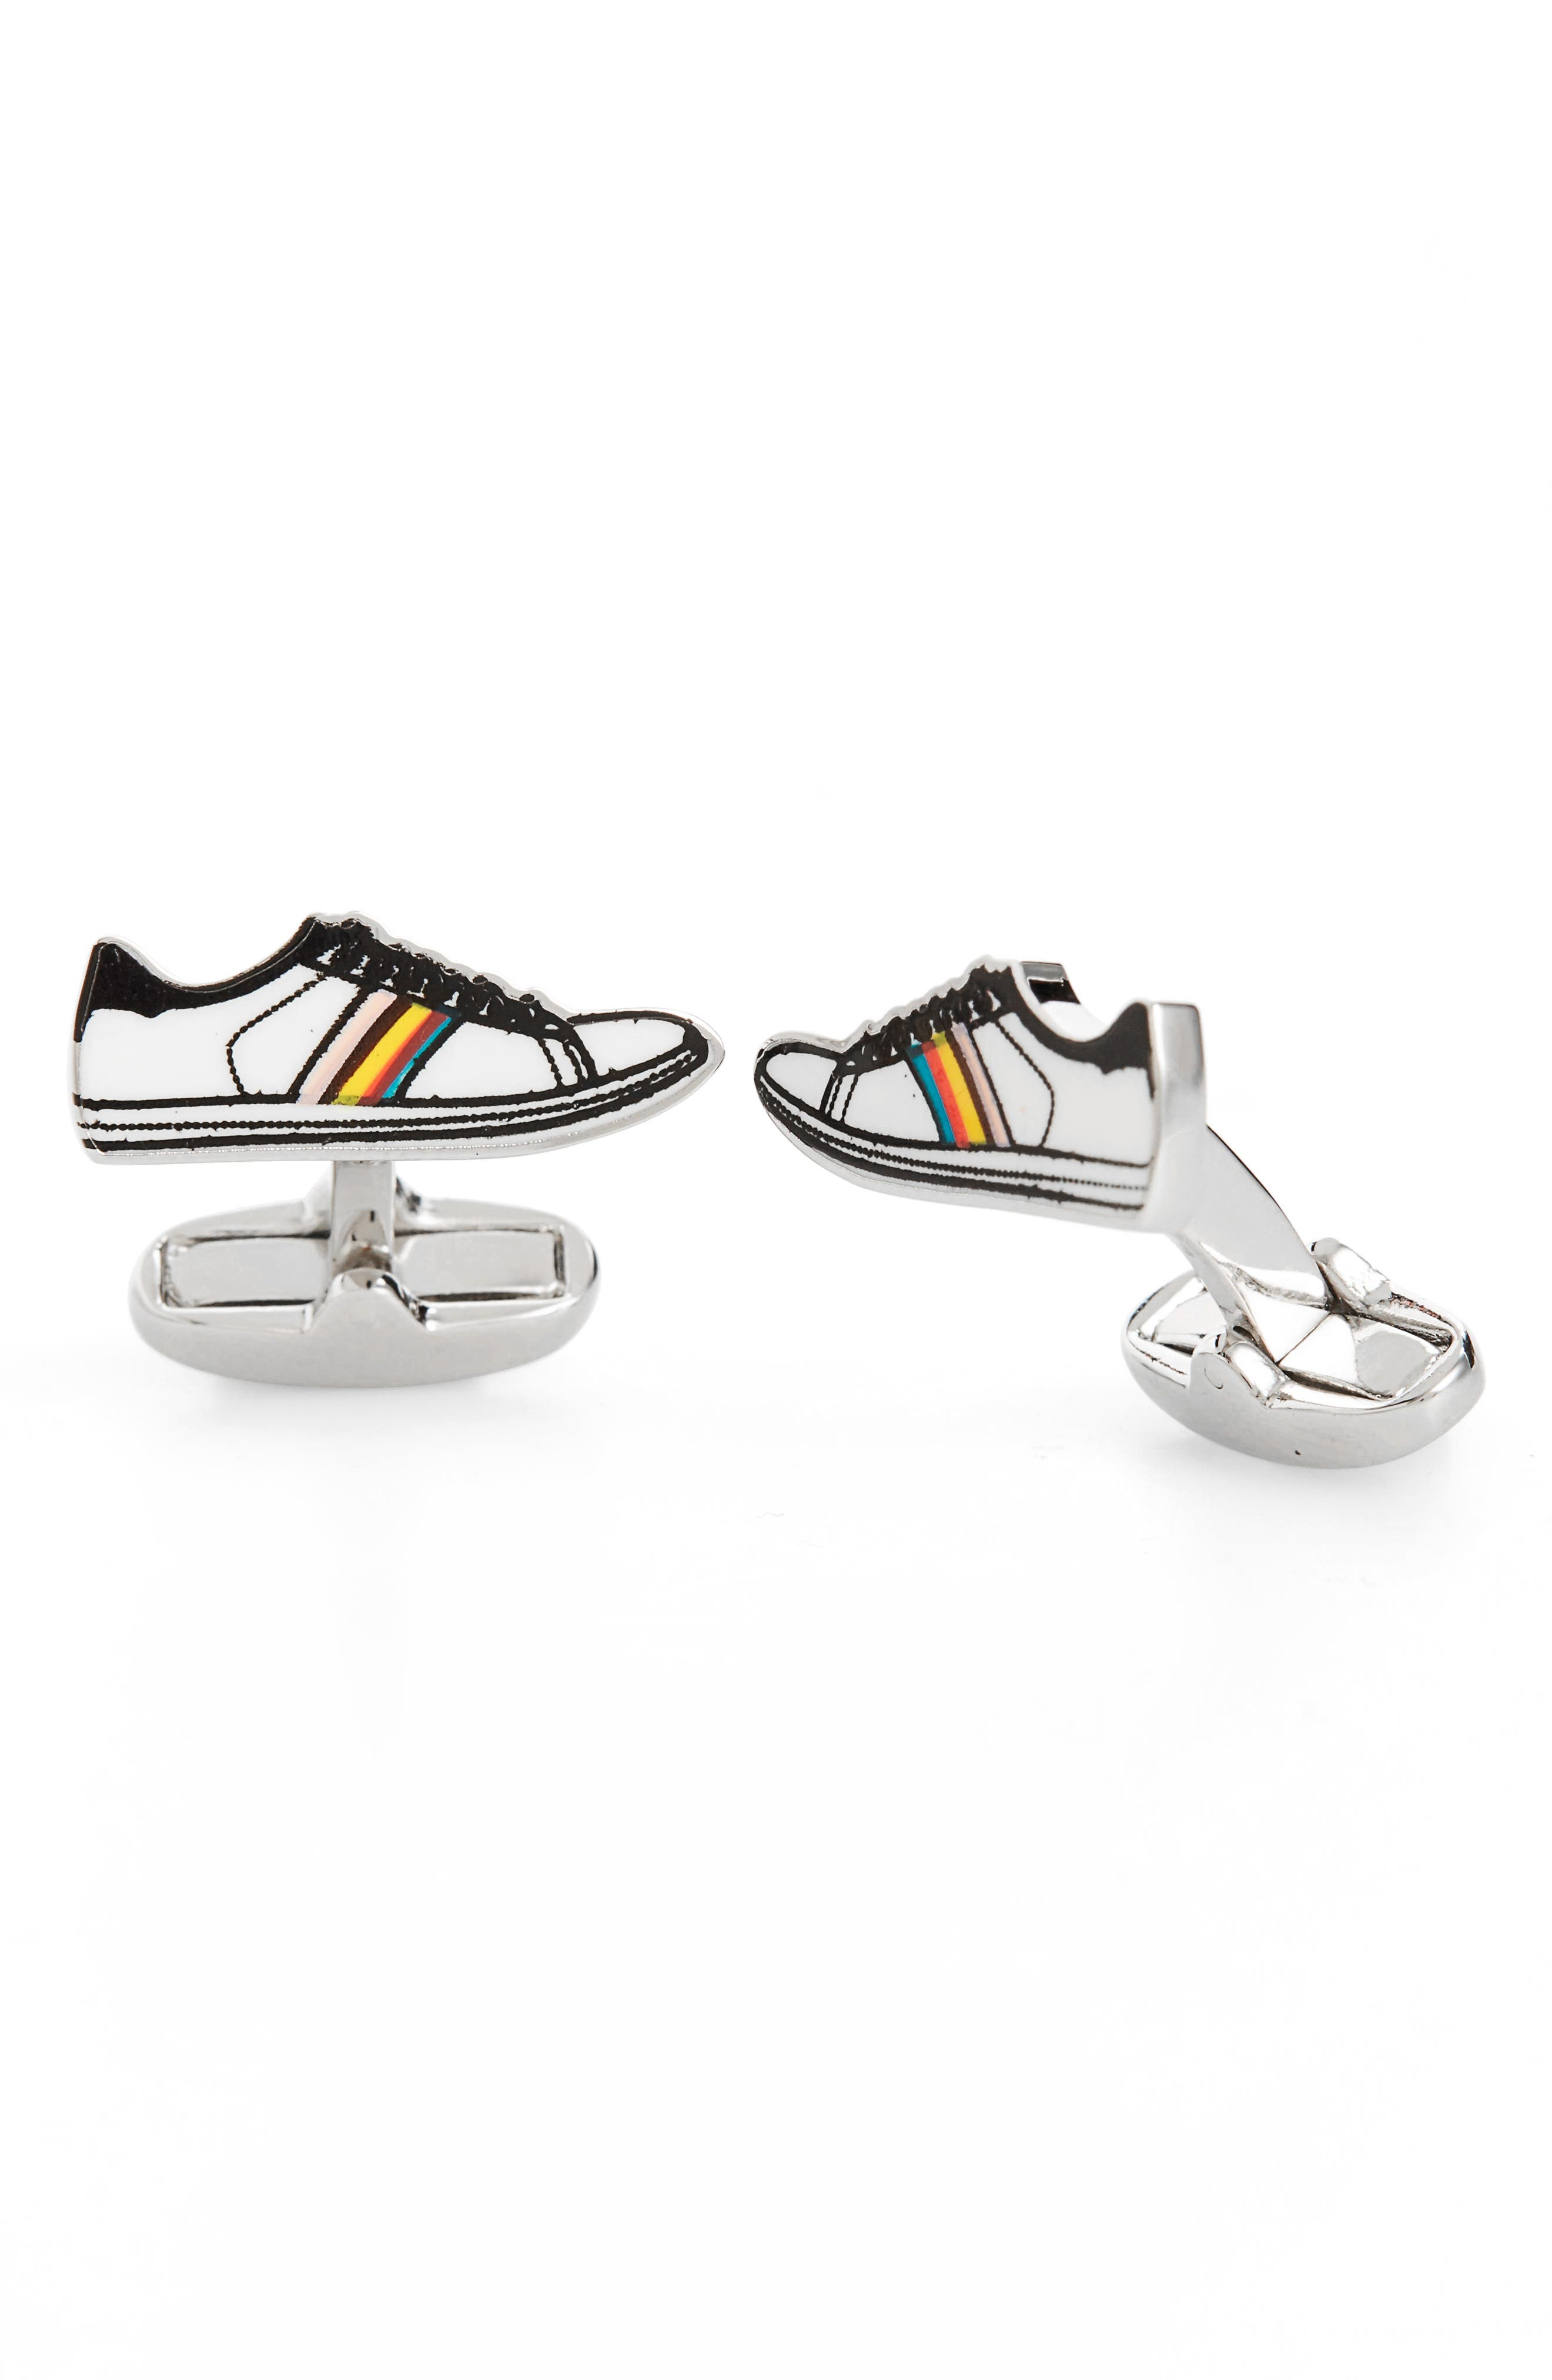 Trainer Cuff Links,                         Main,                         color, 100